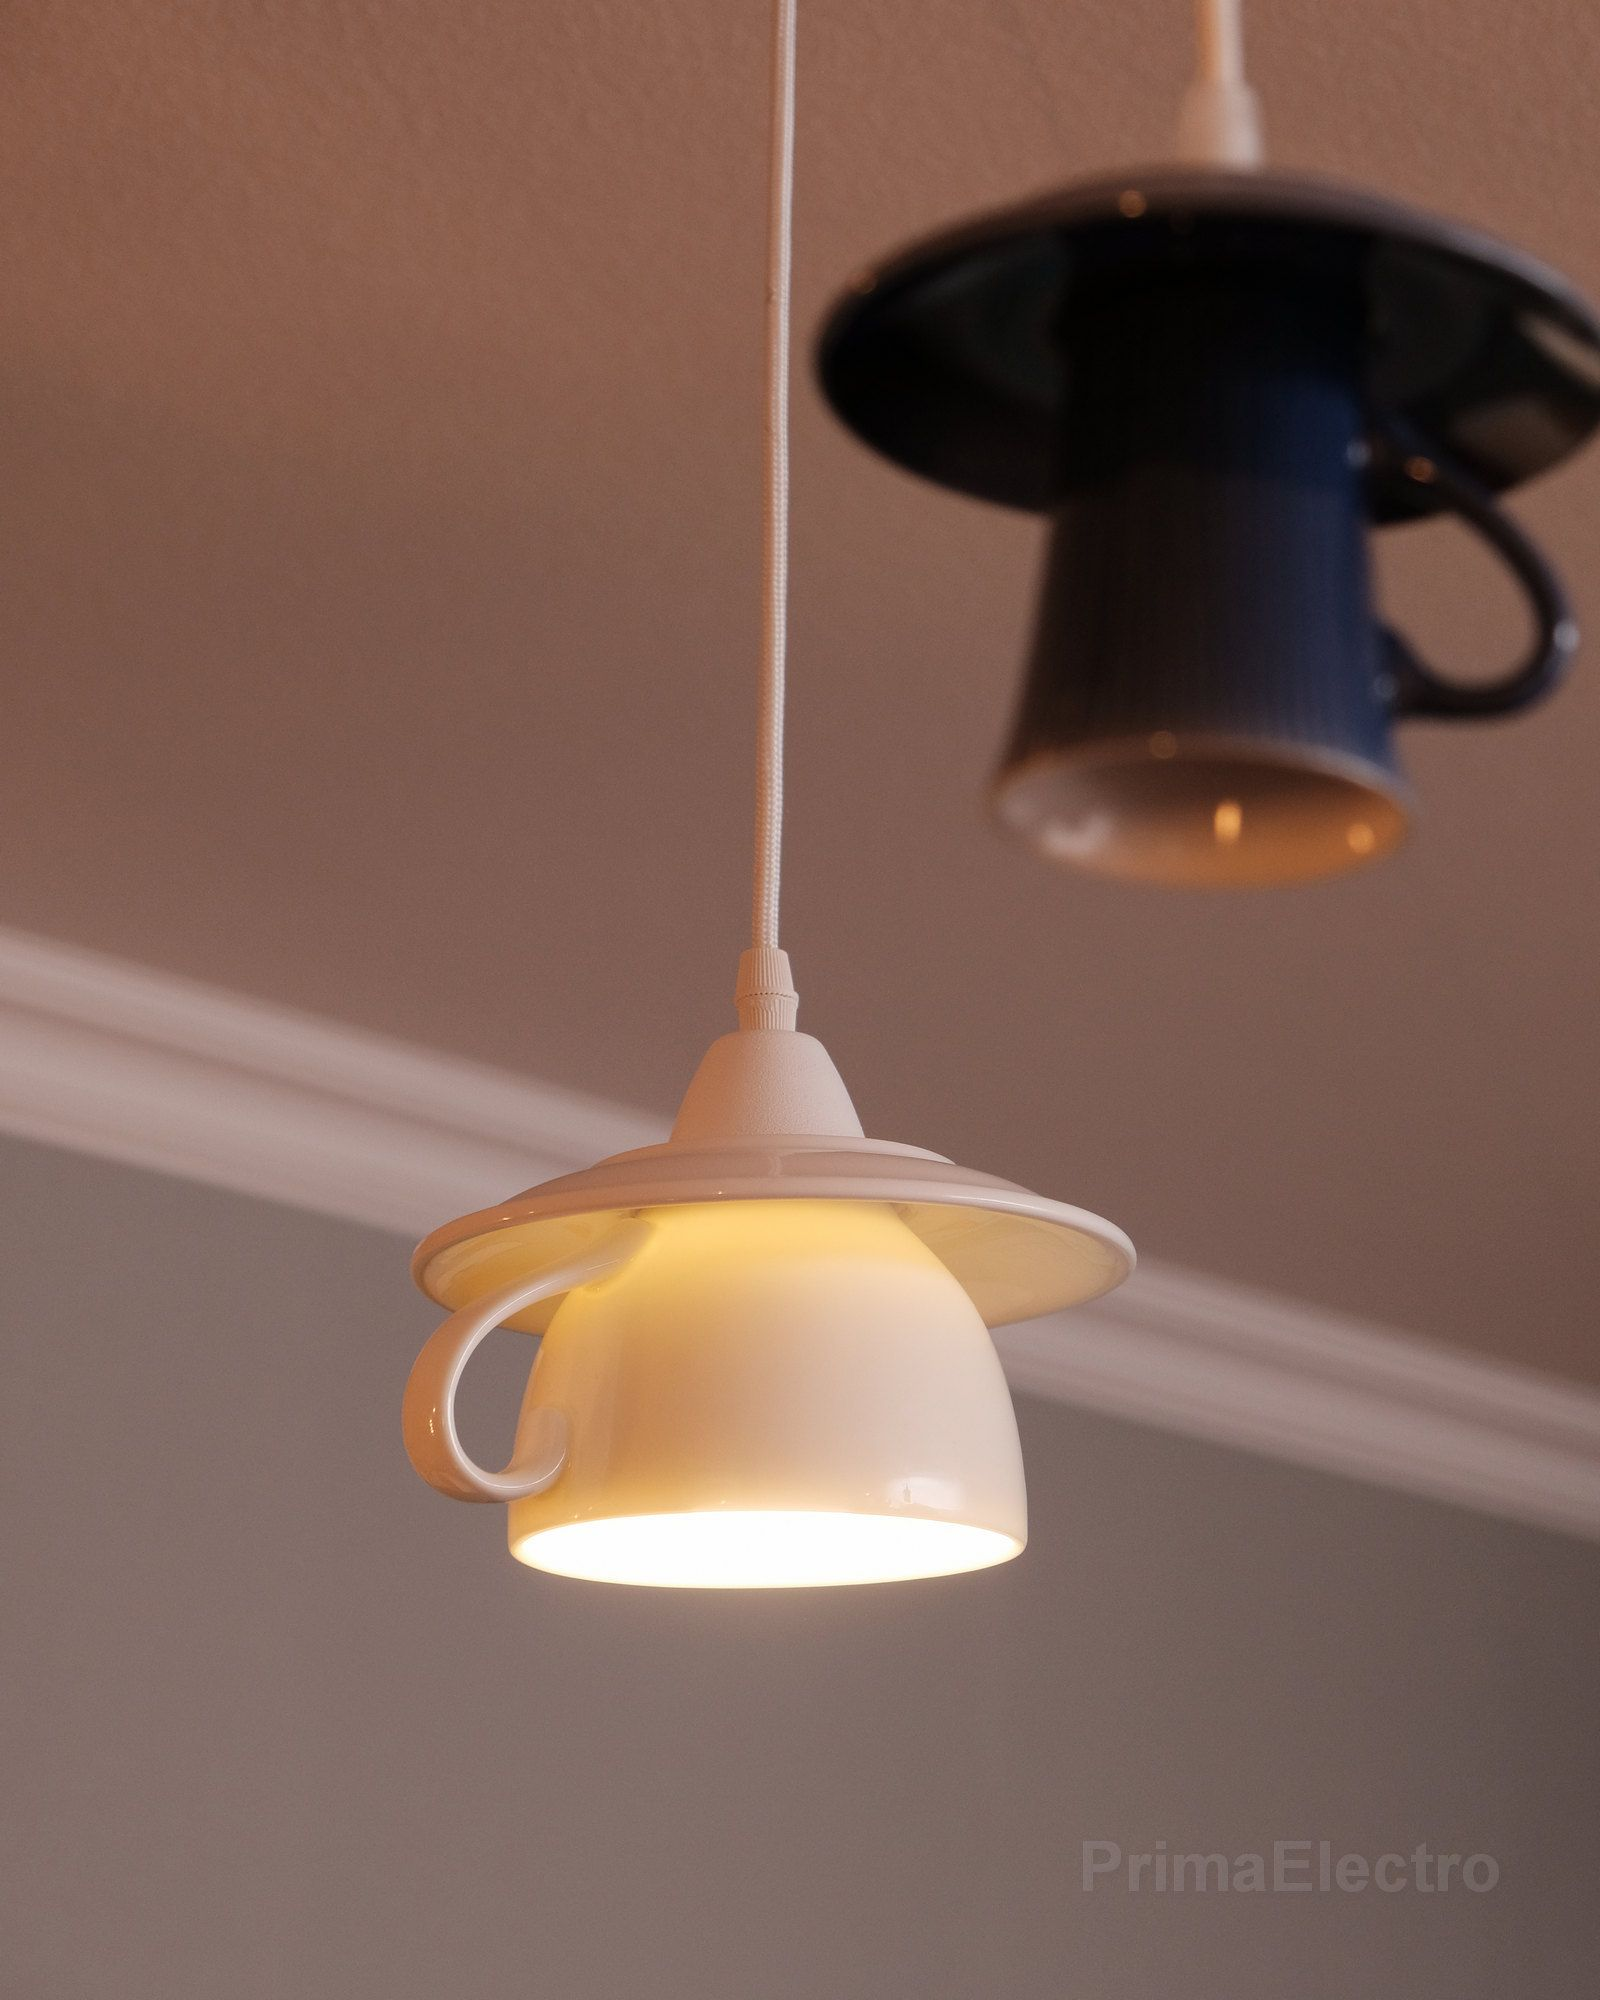 Teacup Pendant Light Kitchen Lighting